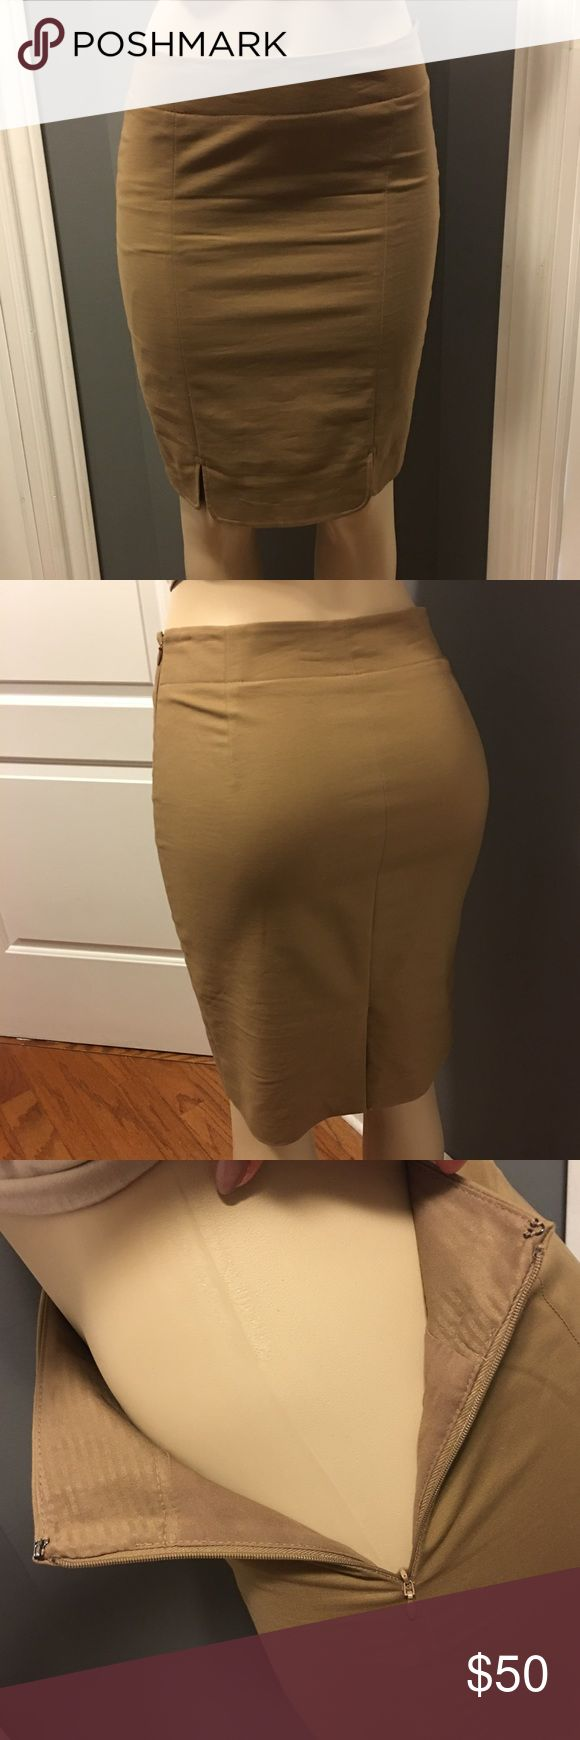 Women's Midi Skirt Sz2 Limited Khaki Lined LikeNew Great Lined Khaki Midi Skirt. Like New. Fully Lined. Size 2. Zip side closure. Slit at back and 2 on the front. Moderate stretch for a great fit The Limited Skirts Midi